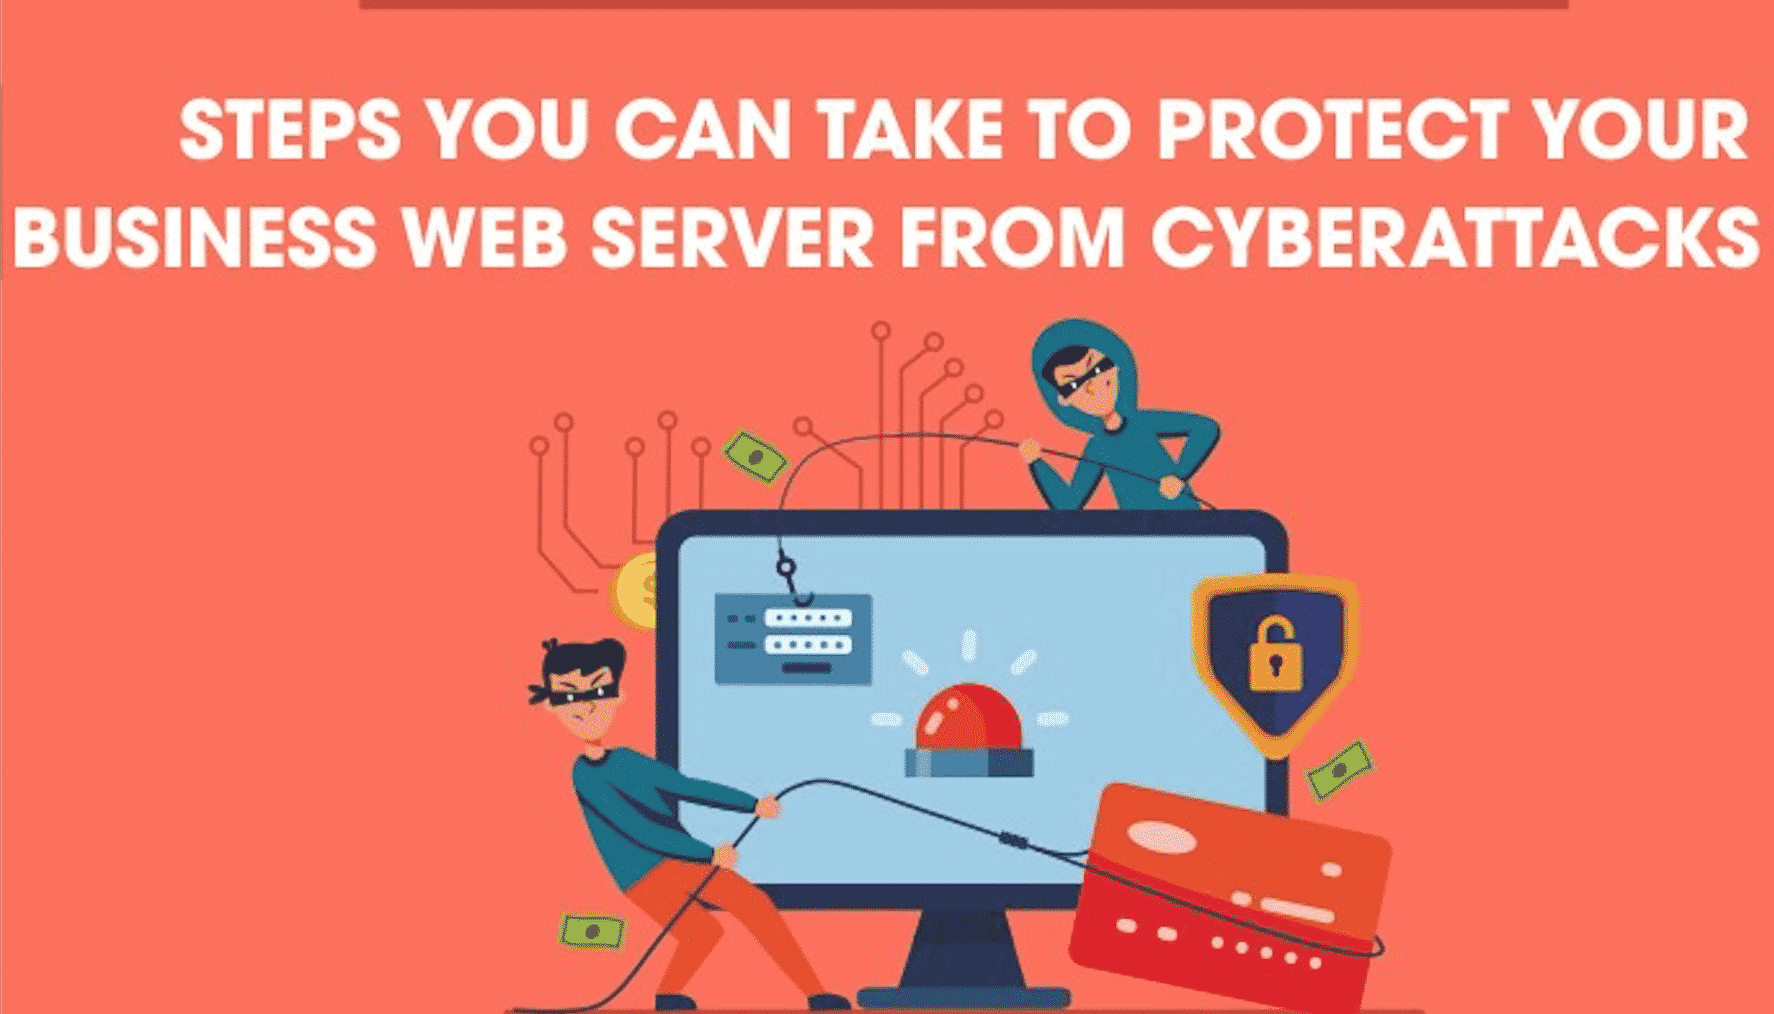 9 Steps You Can Take to Protect Your Business Web Server from Cyberattacks